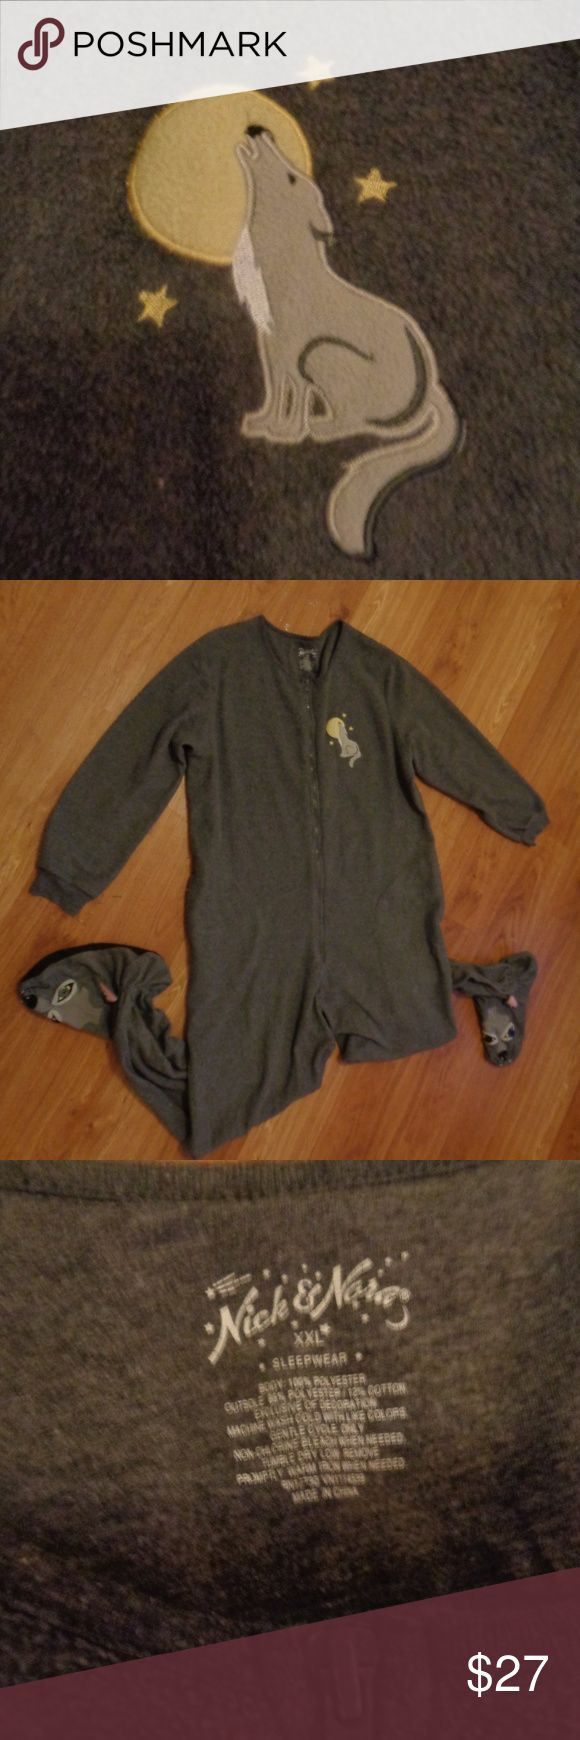 NICK and NORA Footed Wolf Pajamas XXL SO cute! Fleece footed wolf pajamas from Nick and Nora size XXL.   From a smoke free home.  Check out my other listings! I give discounts for bundles!!! Nick & Nora Intimates & Sleepwear Pajamas